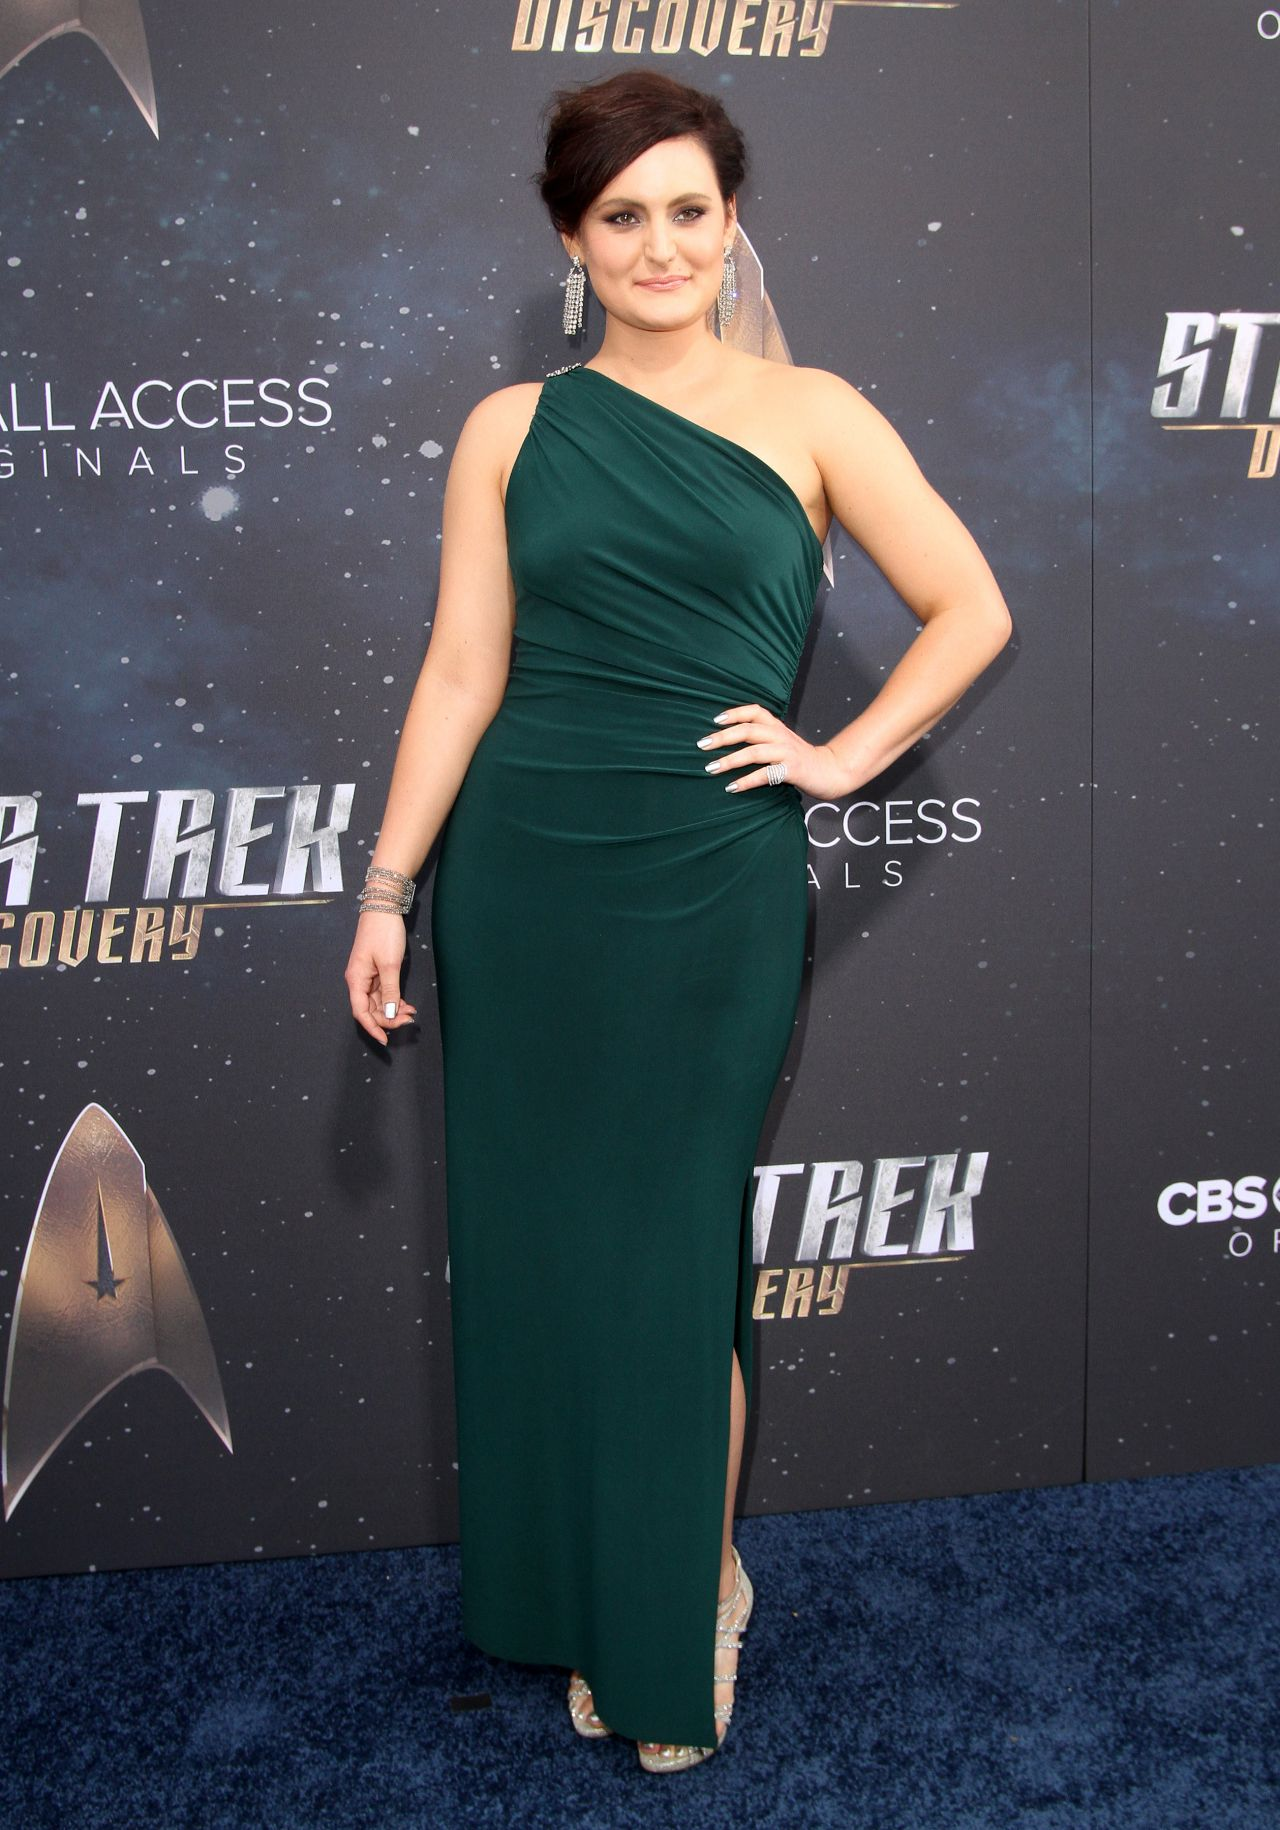 mary-chieffo-star-trek-discovery-tv-show-premiere-in-los-angeles-09-19-2017-9.jpg